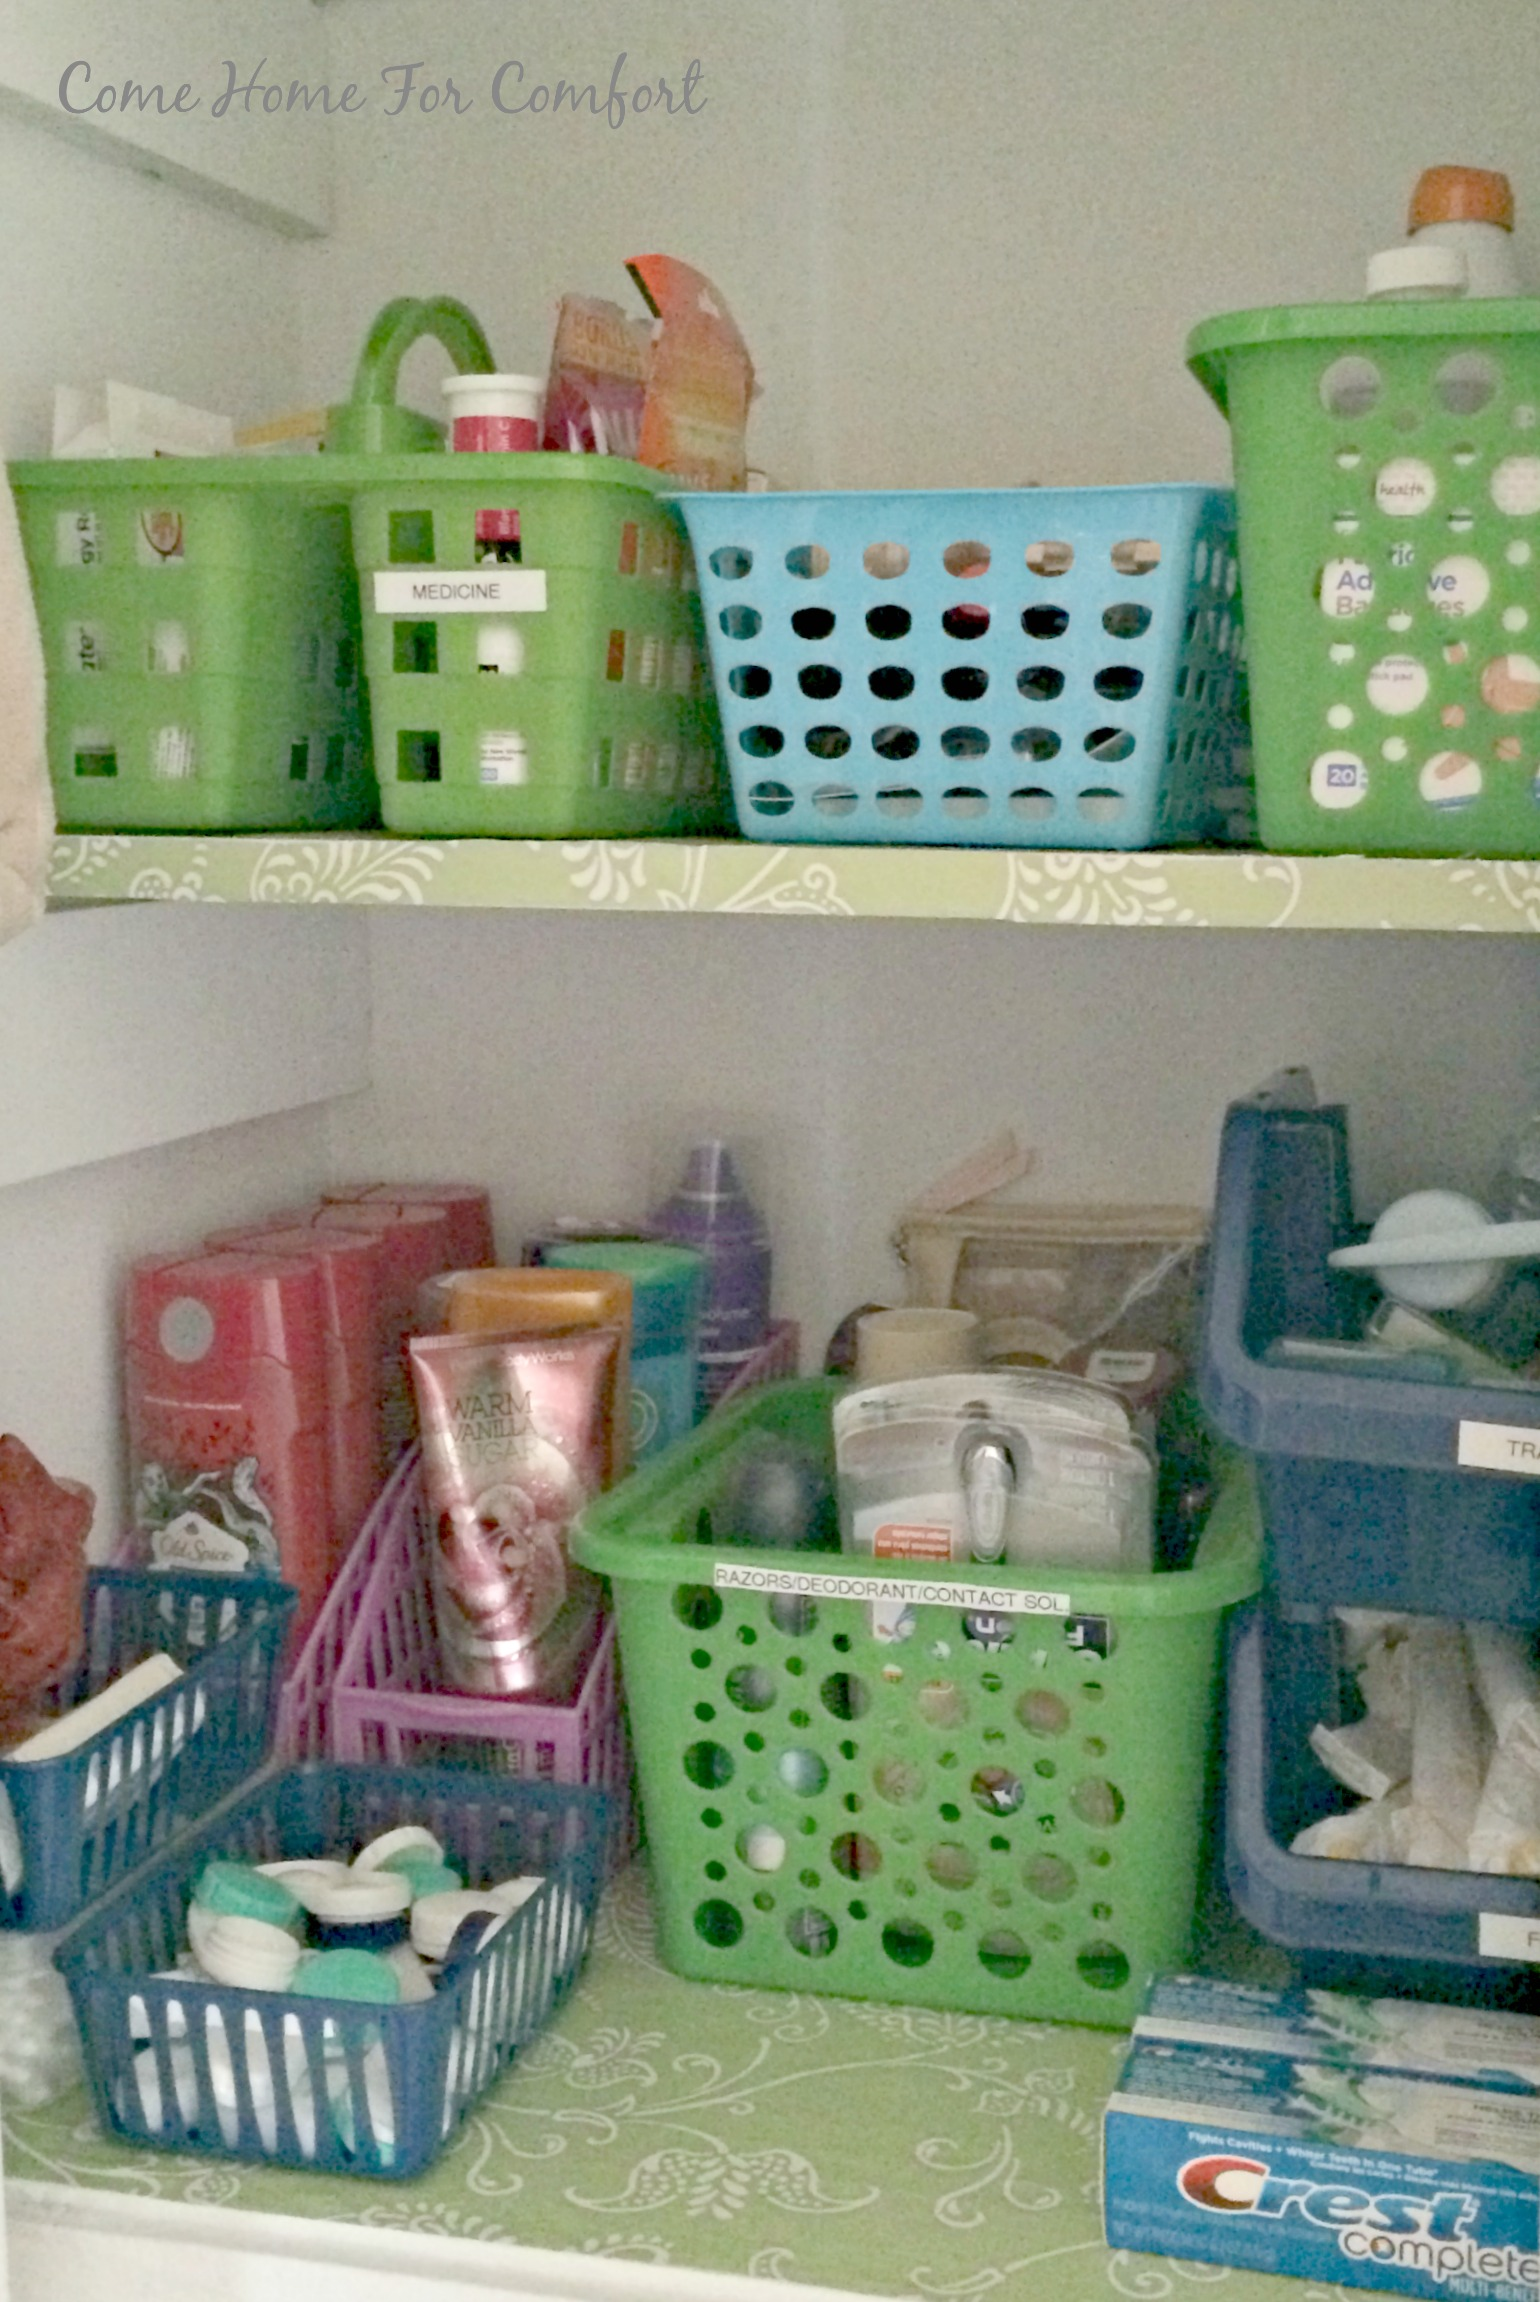 How To Organize Toiletries In A Small Closet Via ComeHomeForComfort.com